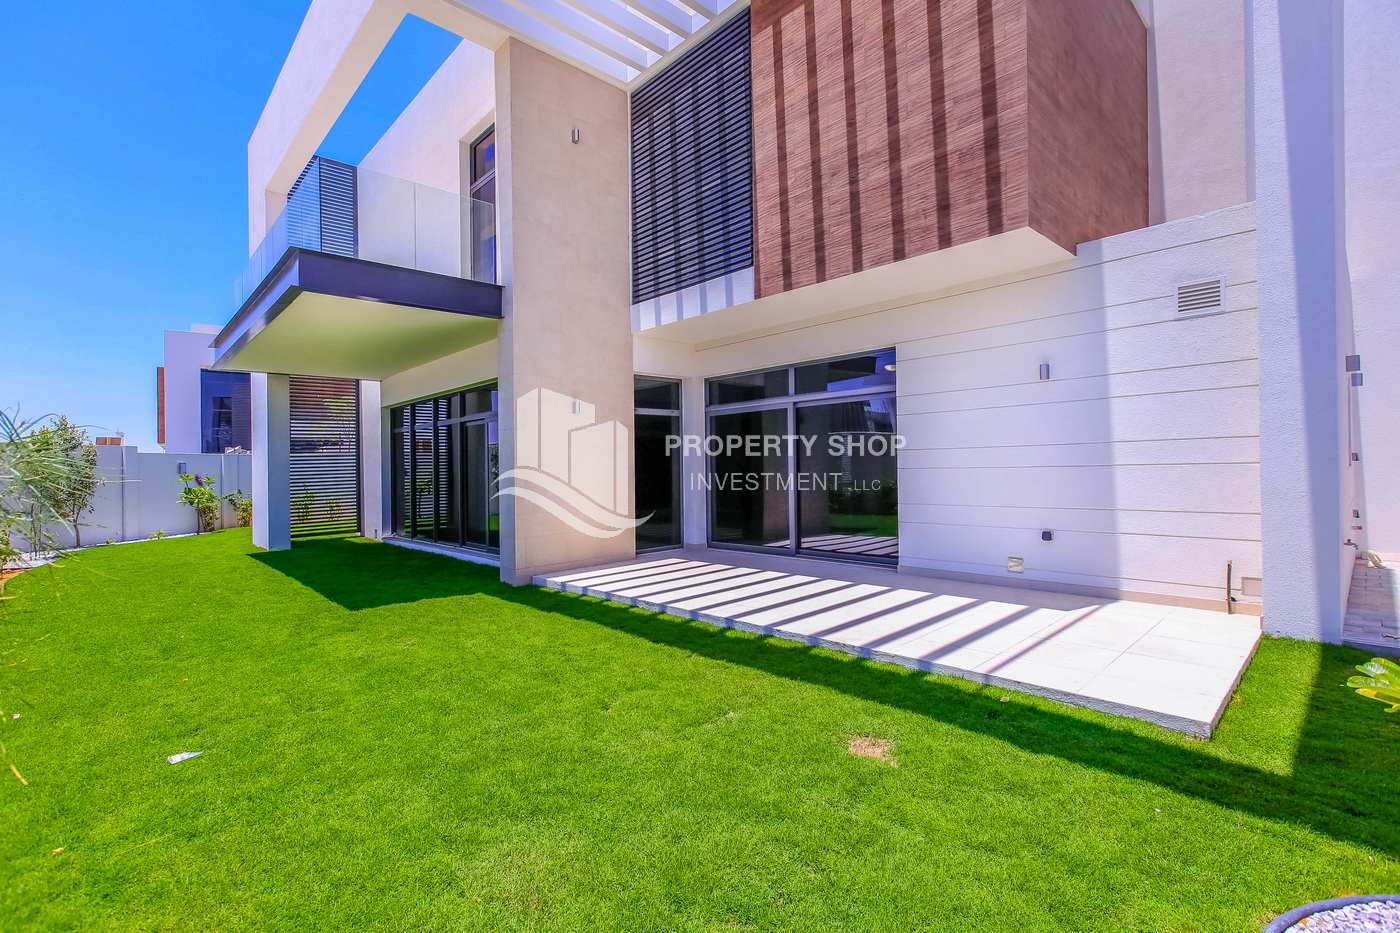 West Yas In Yas Island Villas Residential Land Property Shop Investment